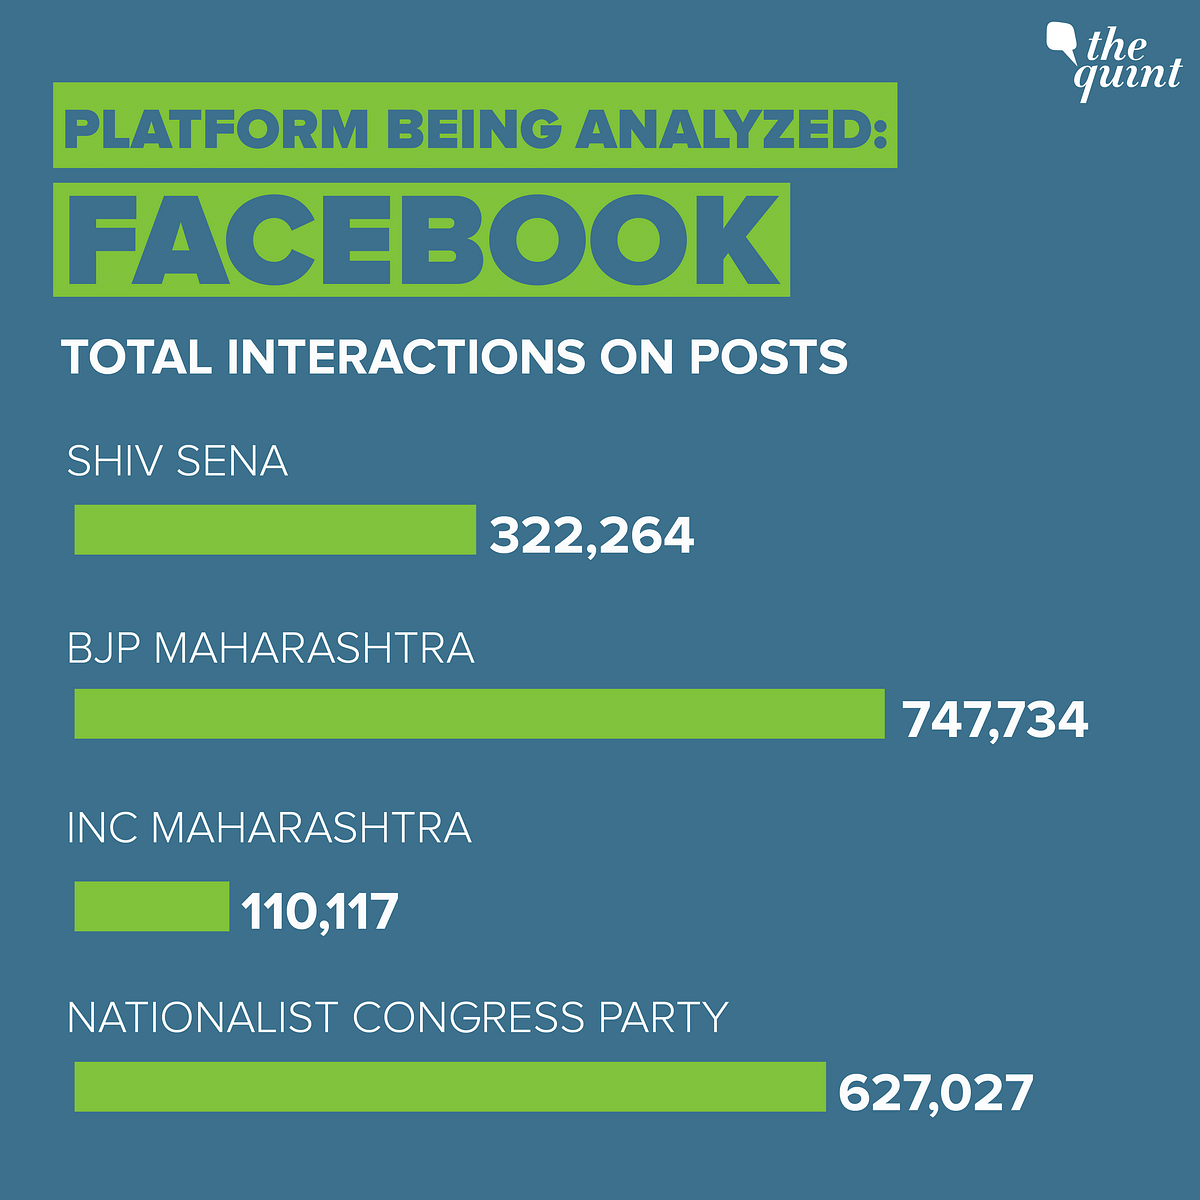 "All data sourced from <a href=""https://apps.crowdtangle.com/thequint/reporting/intelligence?accountType=facebook_page&amp;accounts=373004%2C840678%2C922254%2C375676&amp;brandedContentType=none&amp;breakdownType=postType&amp;comparisonType=none&amp;graphType=total_interactions&amp;graphVisualType=line&amp;interactionType=totalInteractions&amp;interval=week&amp;platform=facebook&amp;postType=all&amp;reportTimeframe=3months"">CrowdTangle</a>."